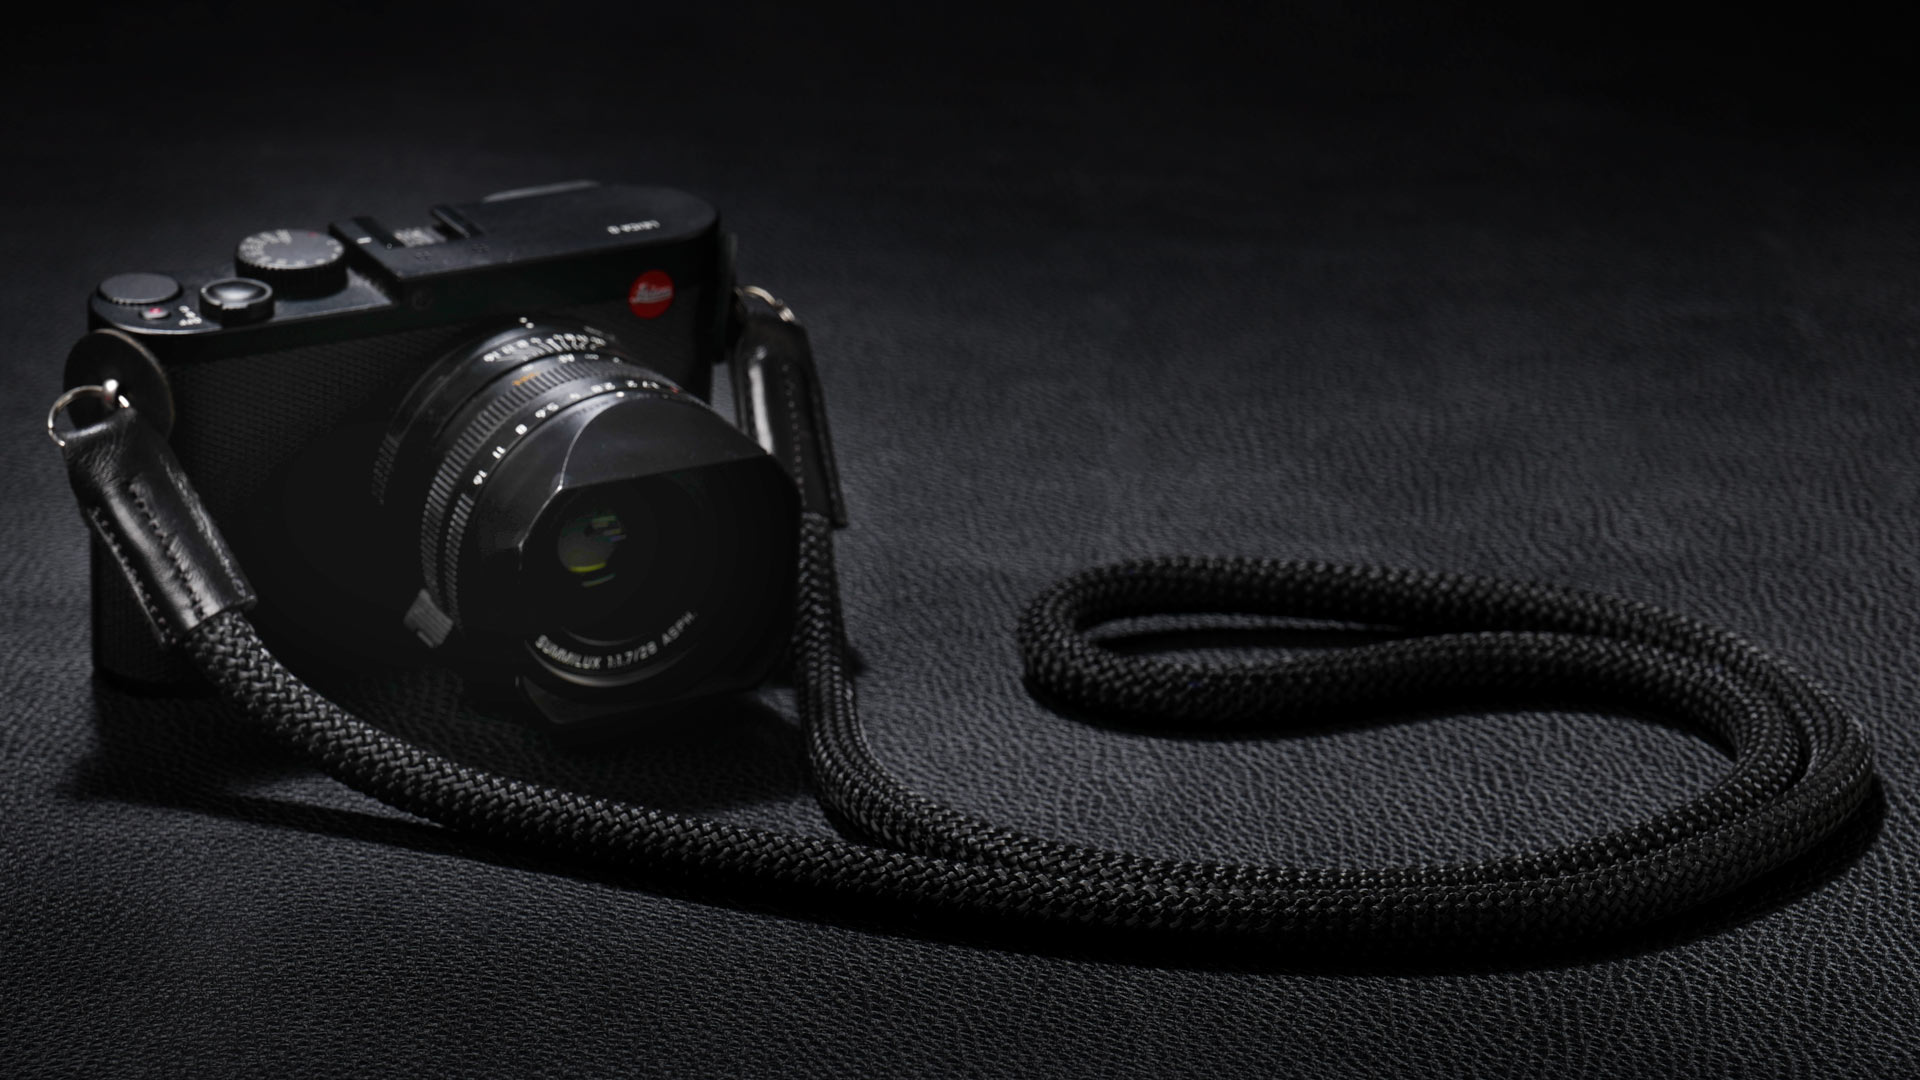 snake strap, rope strap, classic strap, rope camera strap, handmade leather camera strap, leica camera strap, mirrorless camera strap, handmade camera strap, dslr camera strap, black camera strap